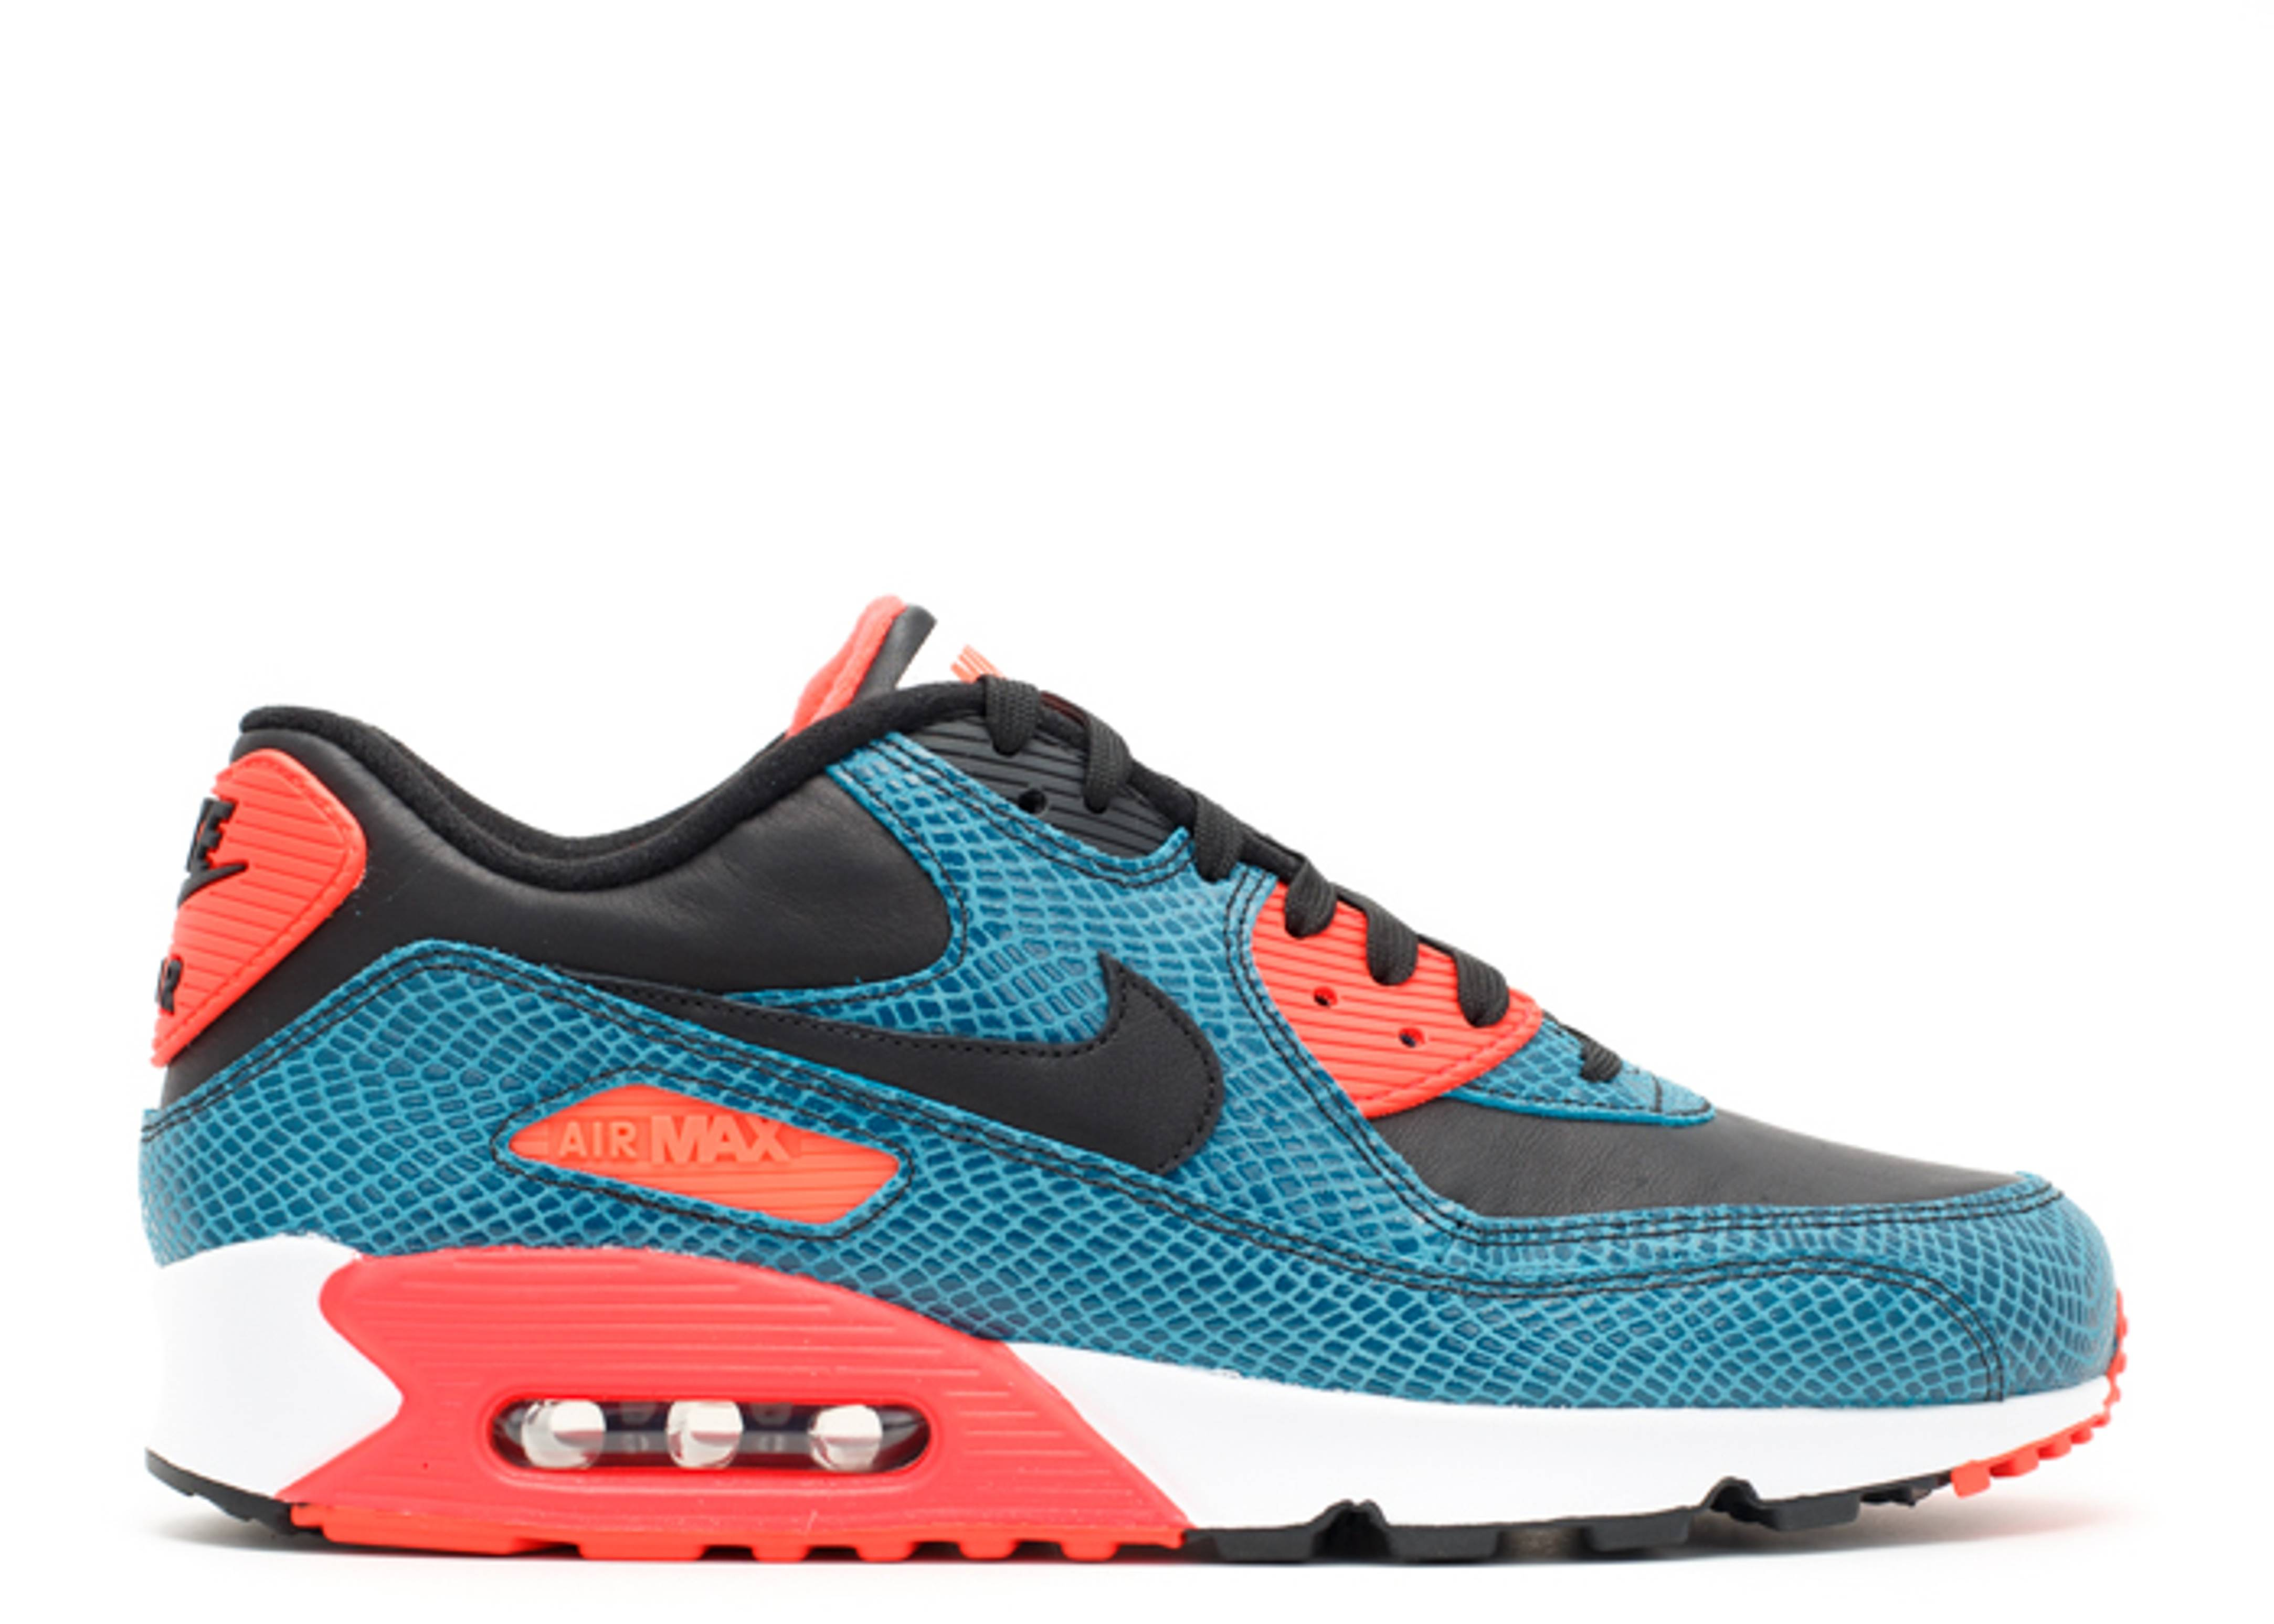 nike air max all colors cheap > OFF30% The Largest Catalog